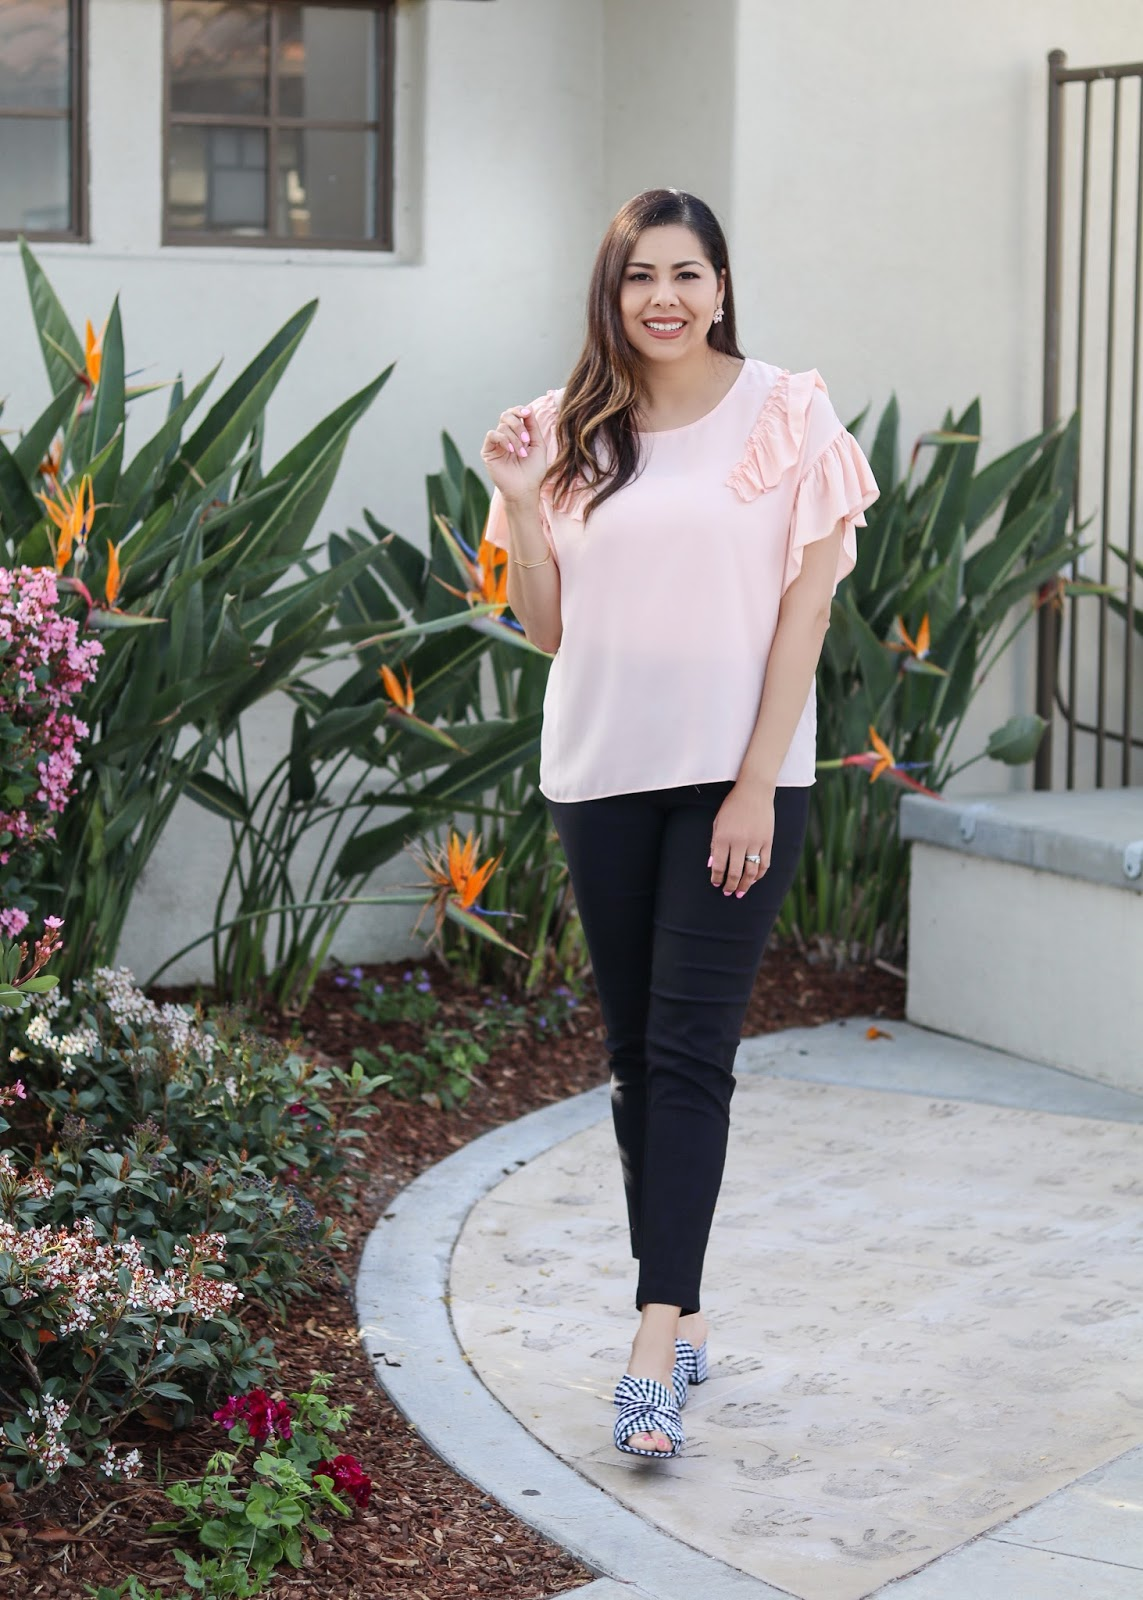 Affordable Spring Style, Affordable Spring Style in San Diego, San Diego fashion blogger in spring outfit